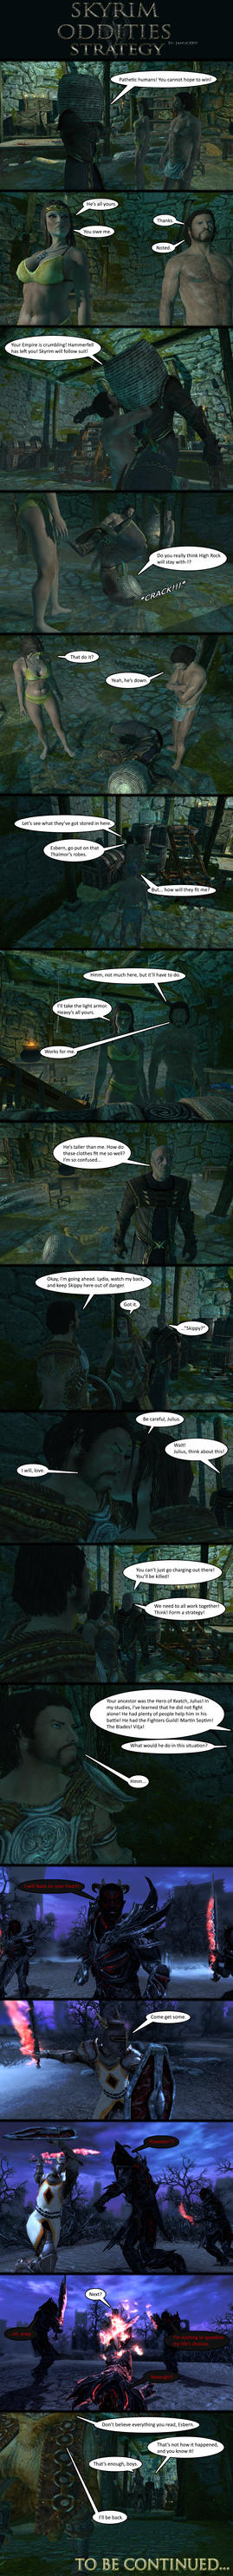 Skyrim Oddities: Strategy by Janus3003